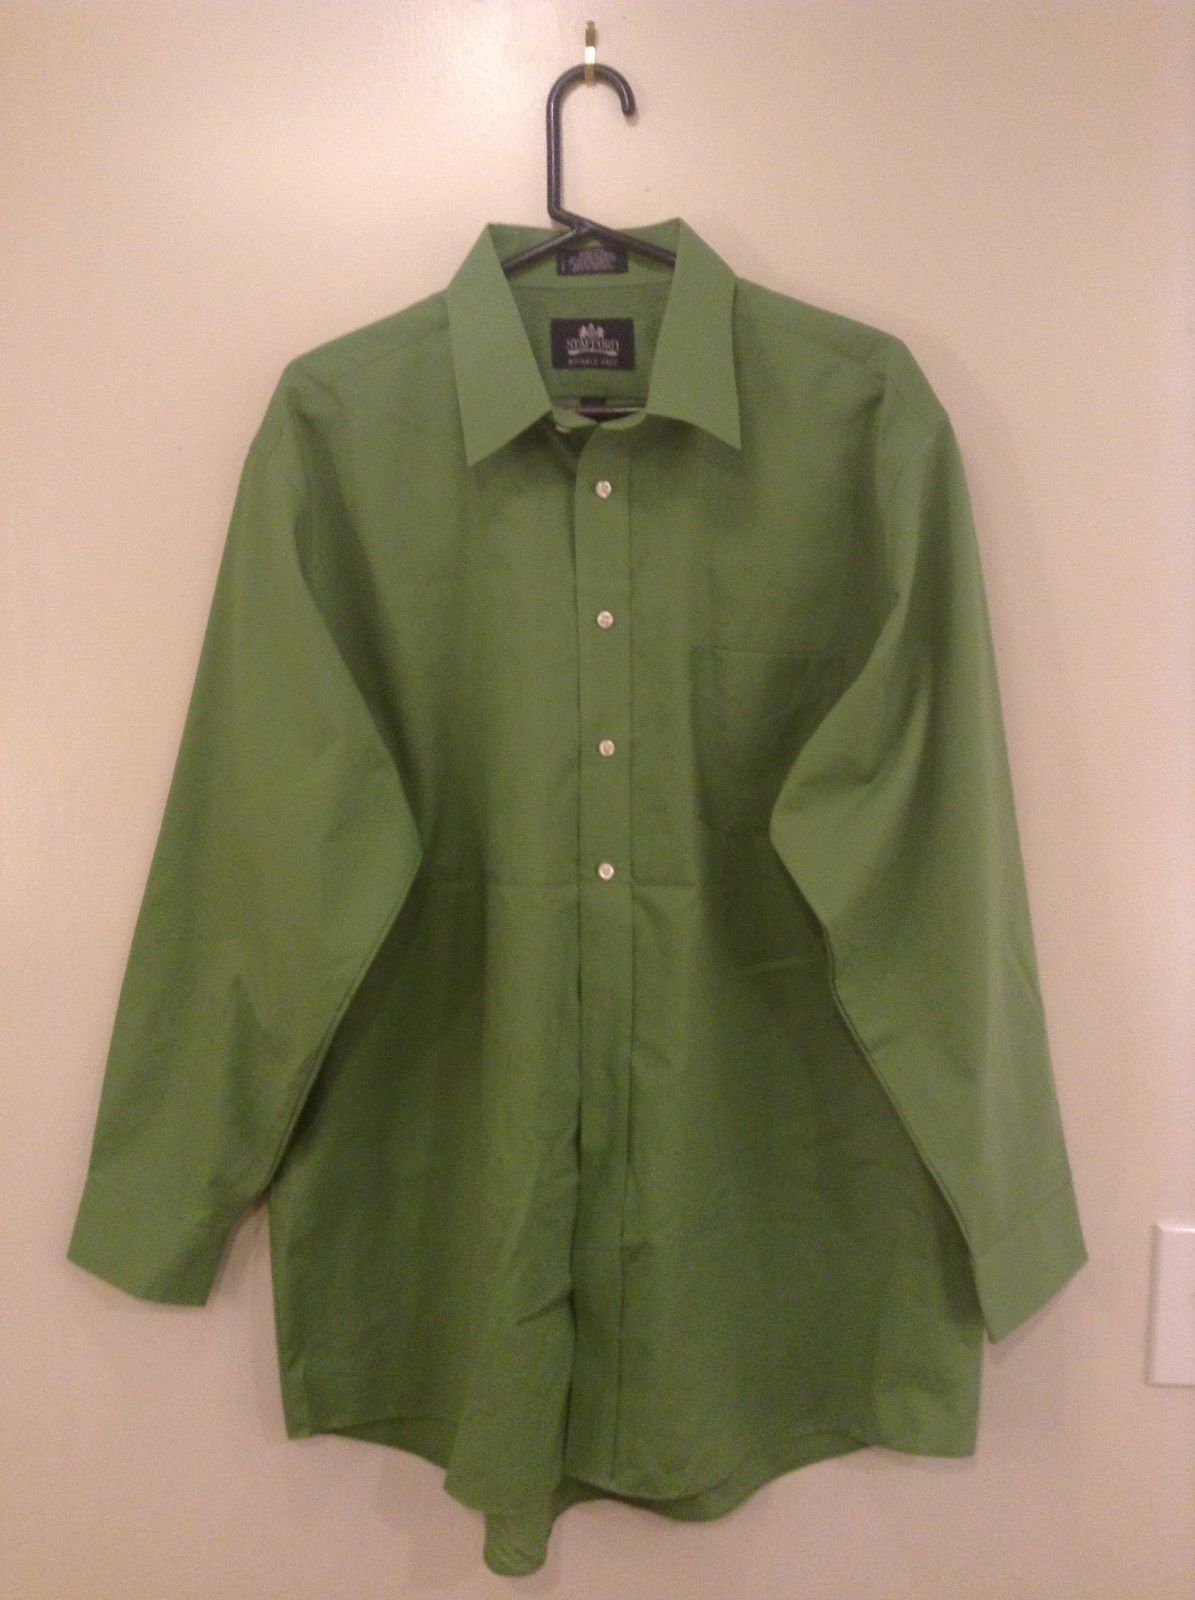 Green Long Sleeve Button Up Stafford Shirt Chest Pocket Size 17.5 by 34 to 35